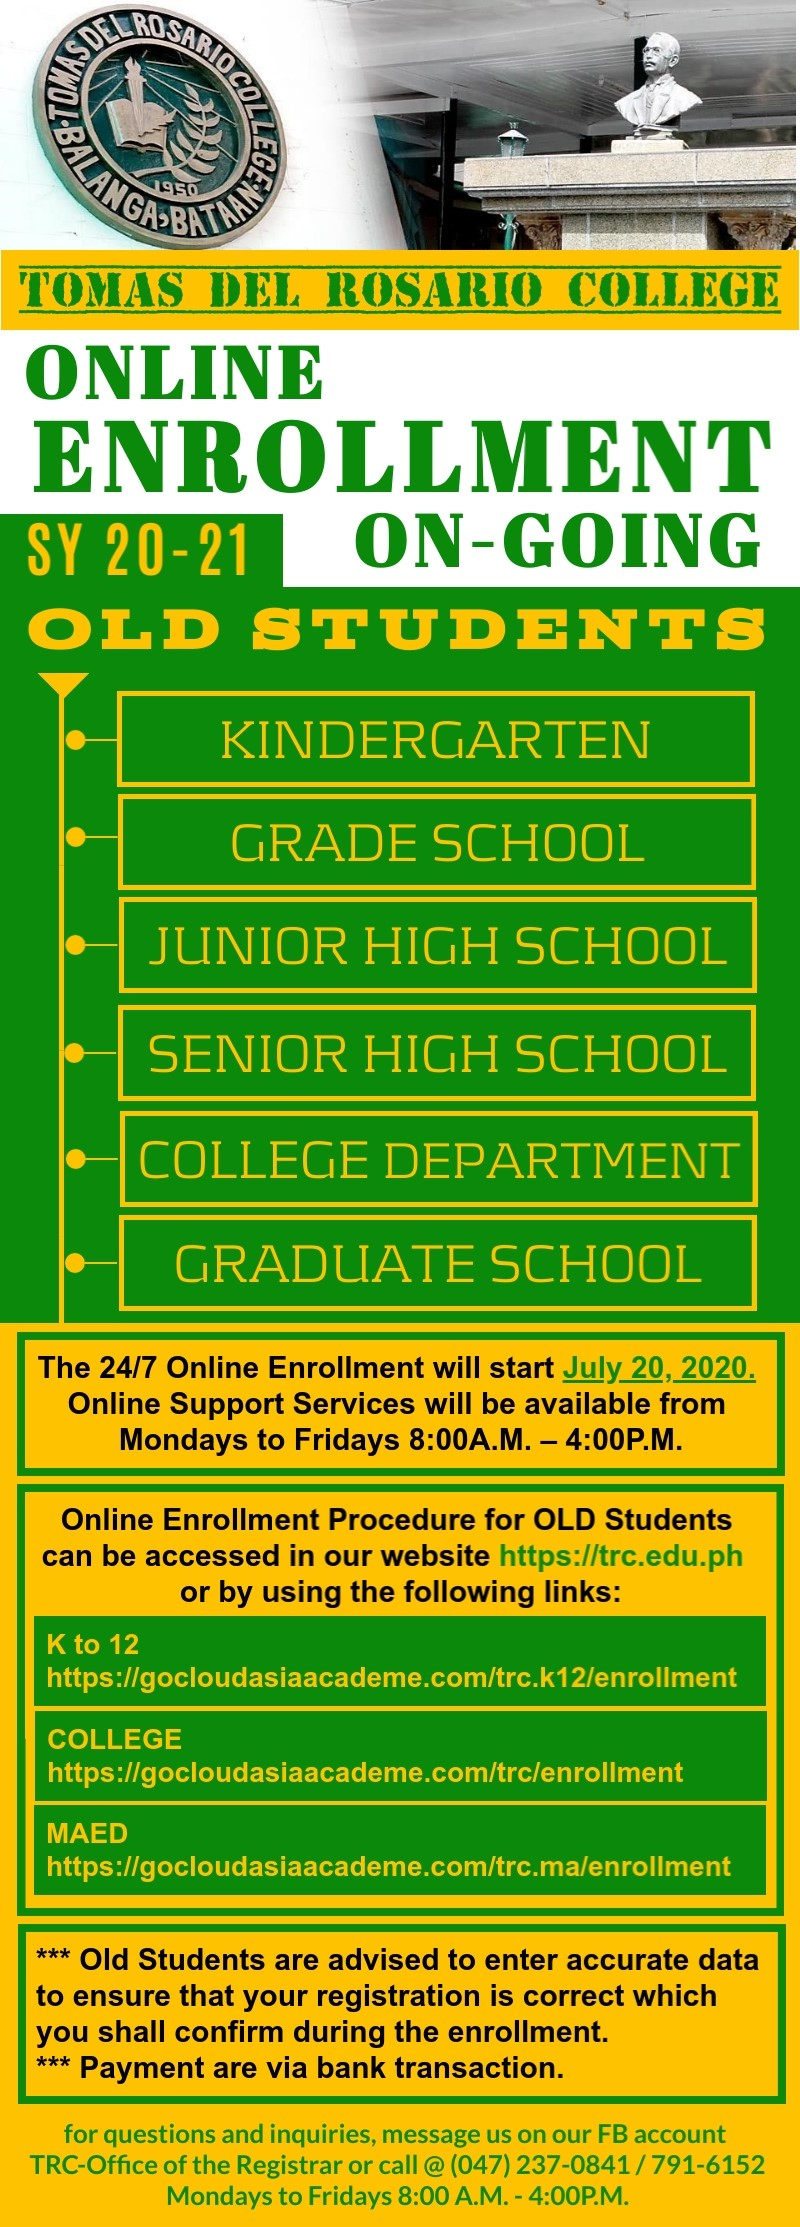 ENROLLMENT FOR OLD STUDENTS - ALL LEVELS